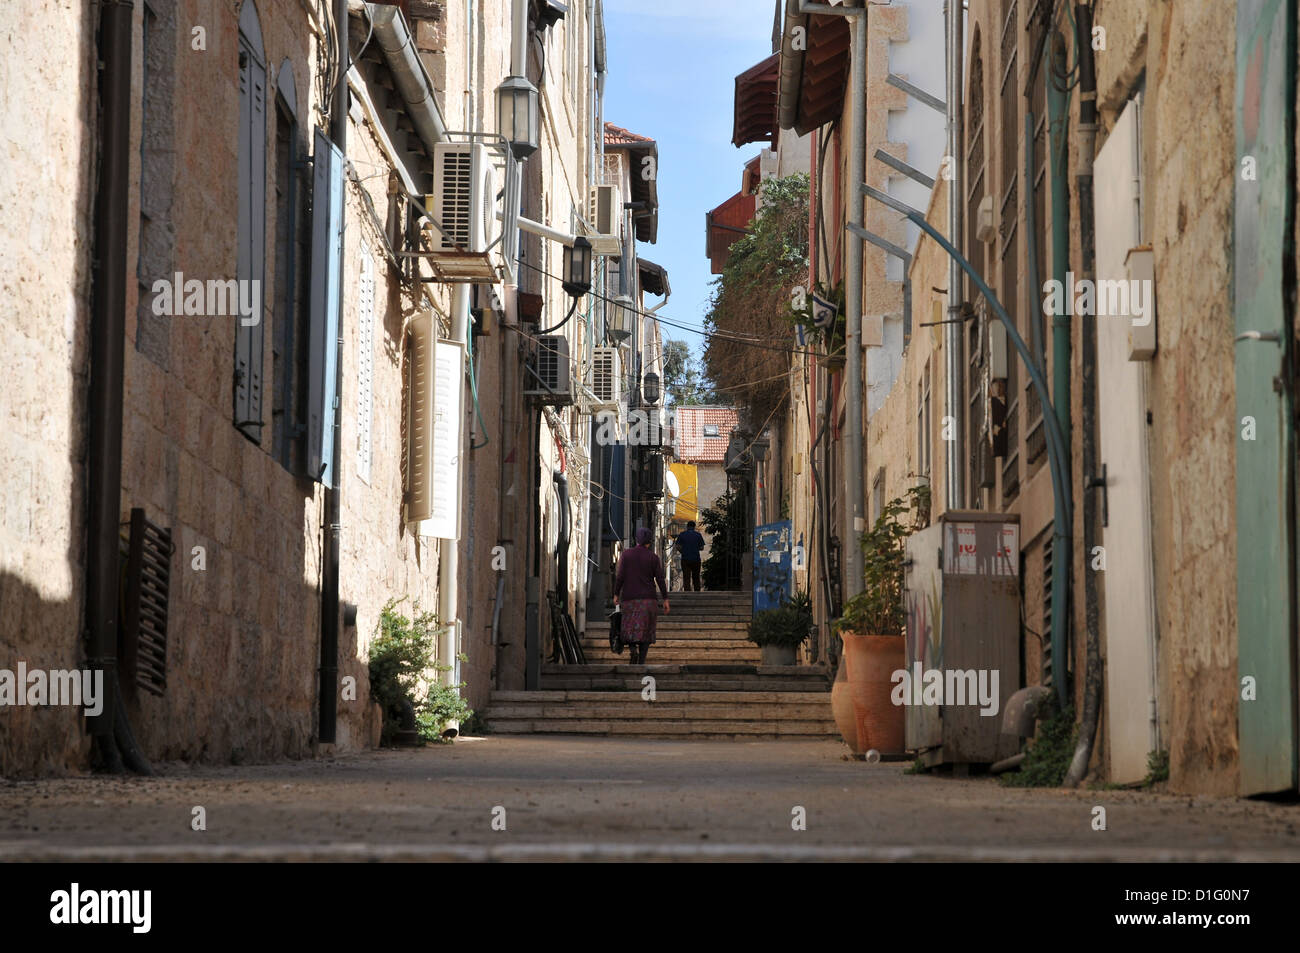 Israel, West Jerusalem, Machane Yehuda neighbourhood - Stock Image